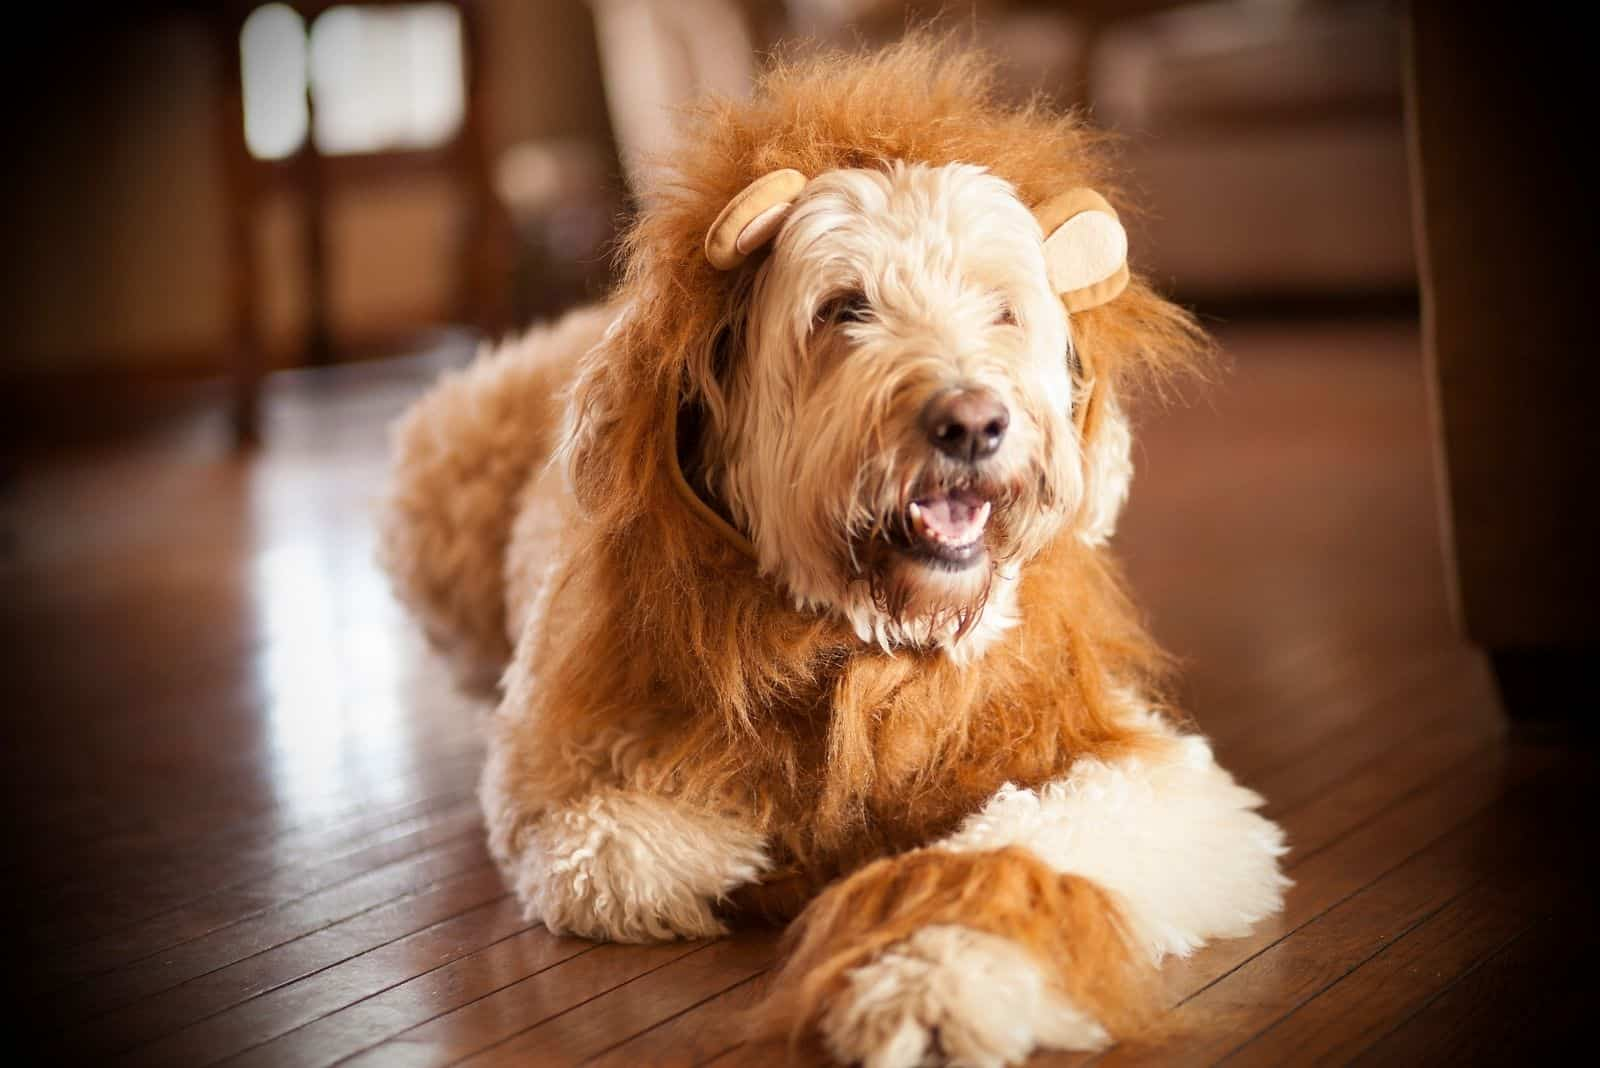 lion costumed goldendoodle sitting on the wooden floor of the house